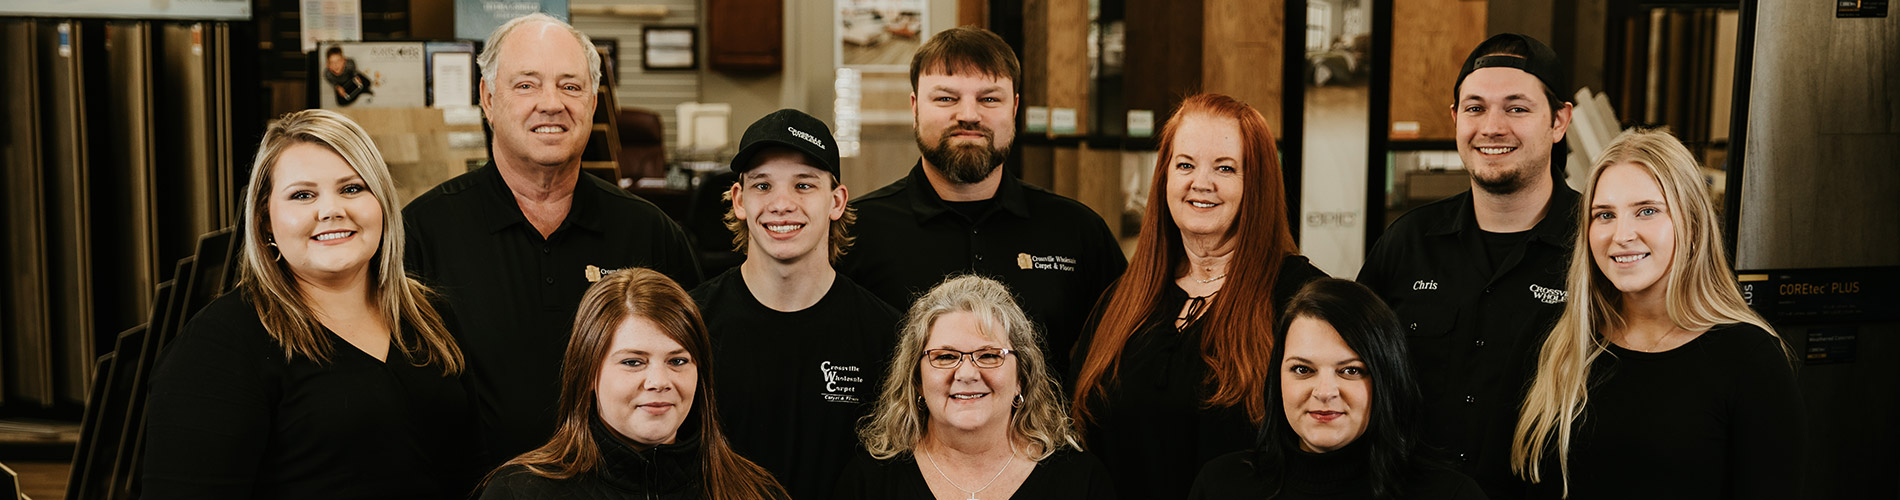 Crossville Wholesale Carpet & Floors Staff